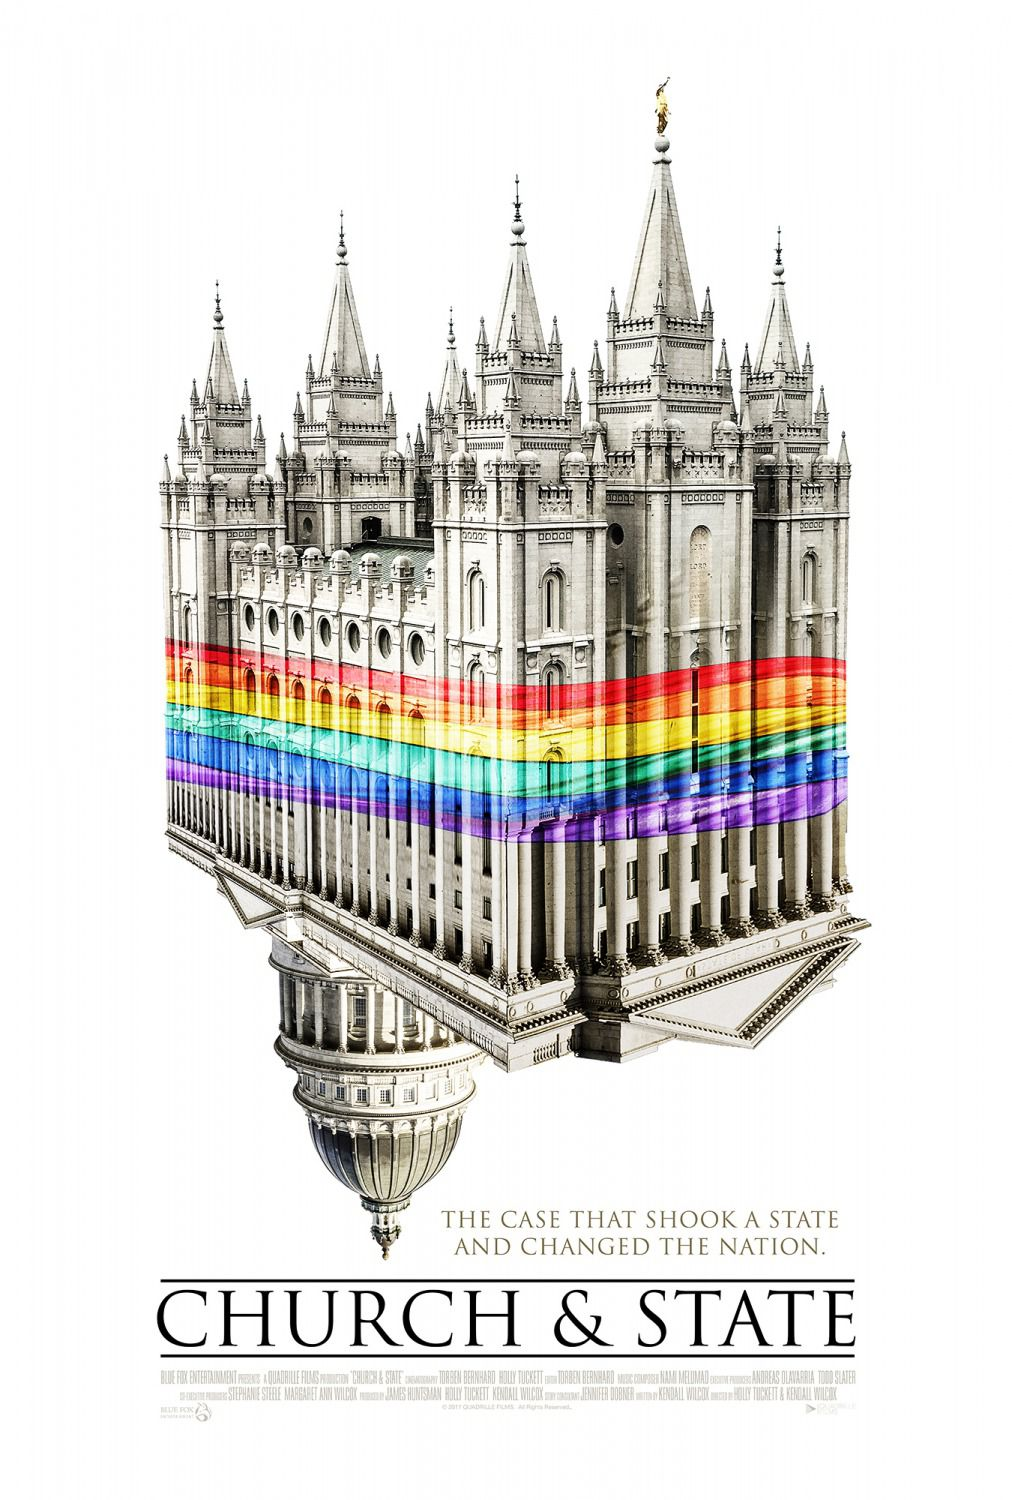 Church and State - The case that shook a state and changed the nation - Docu Film poster